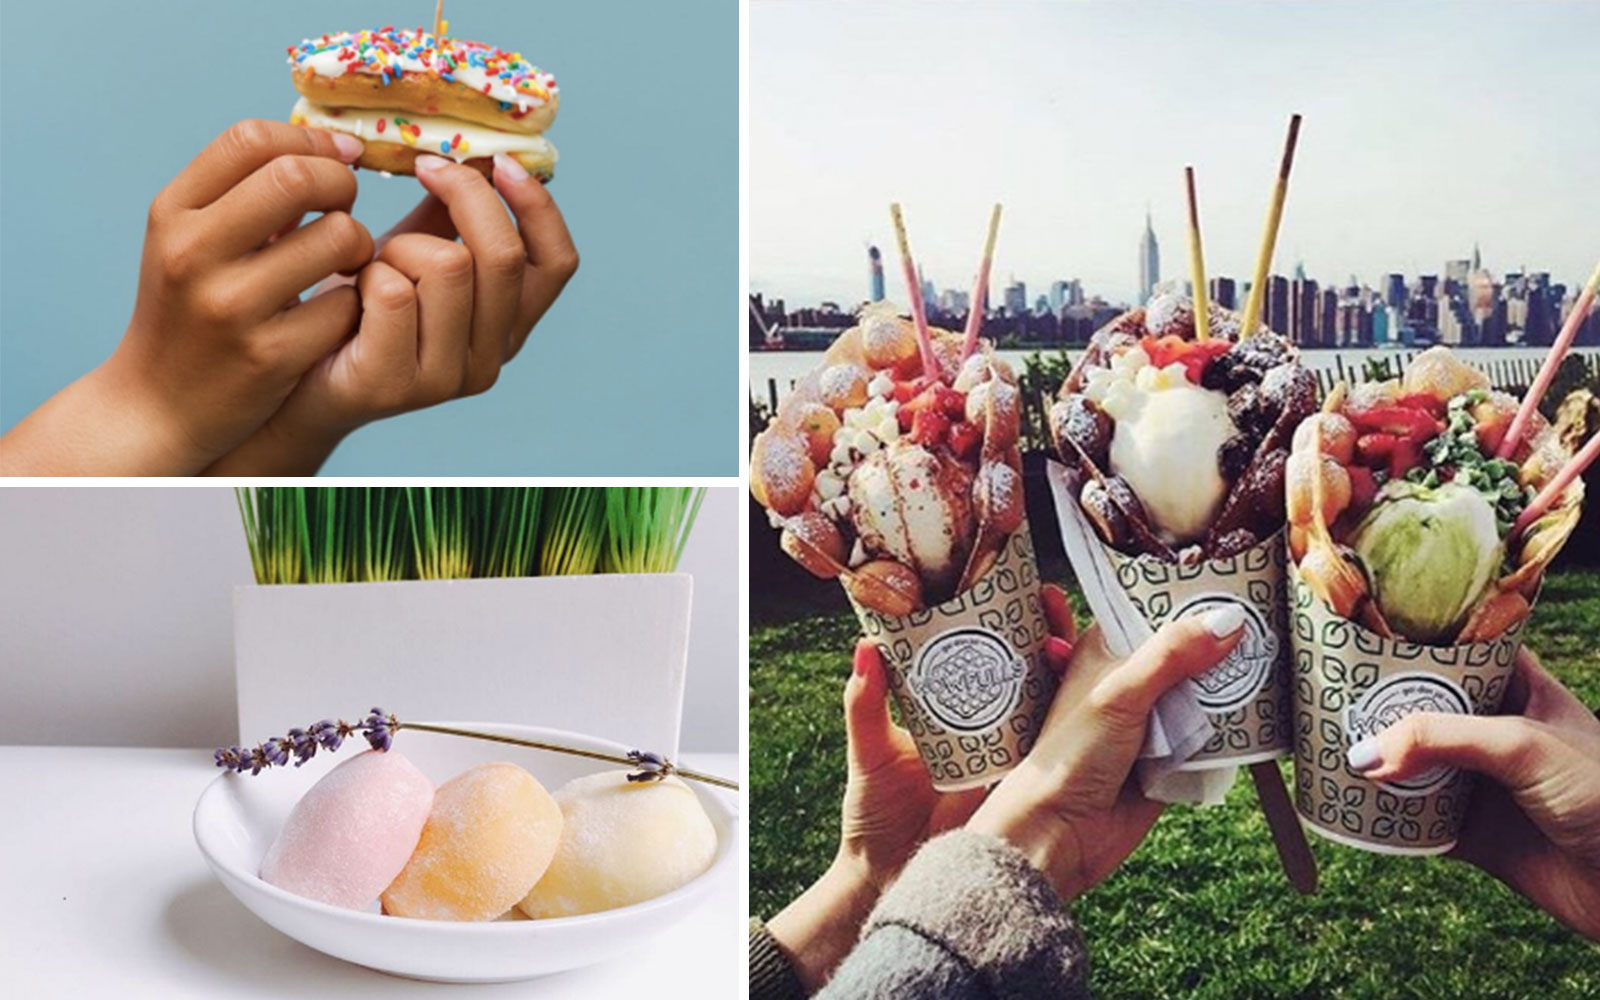 Satisfy Your Sweet Tooth at New York City's First Dessert Festival